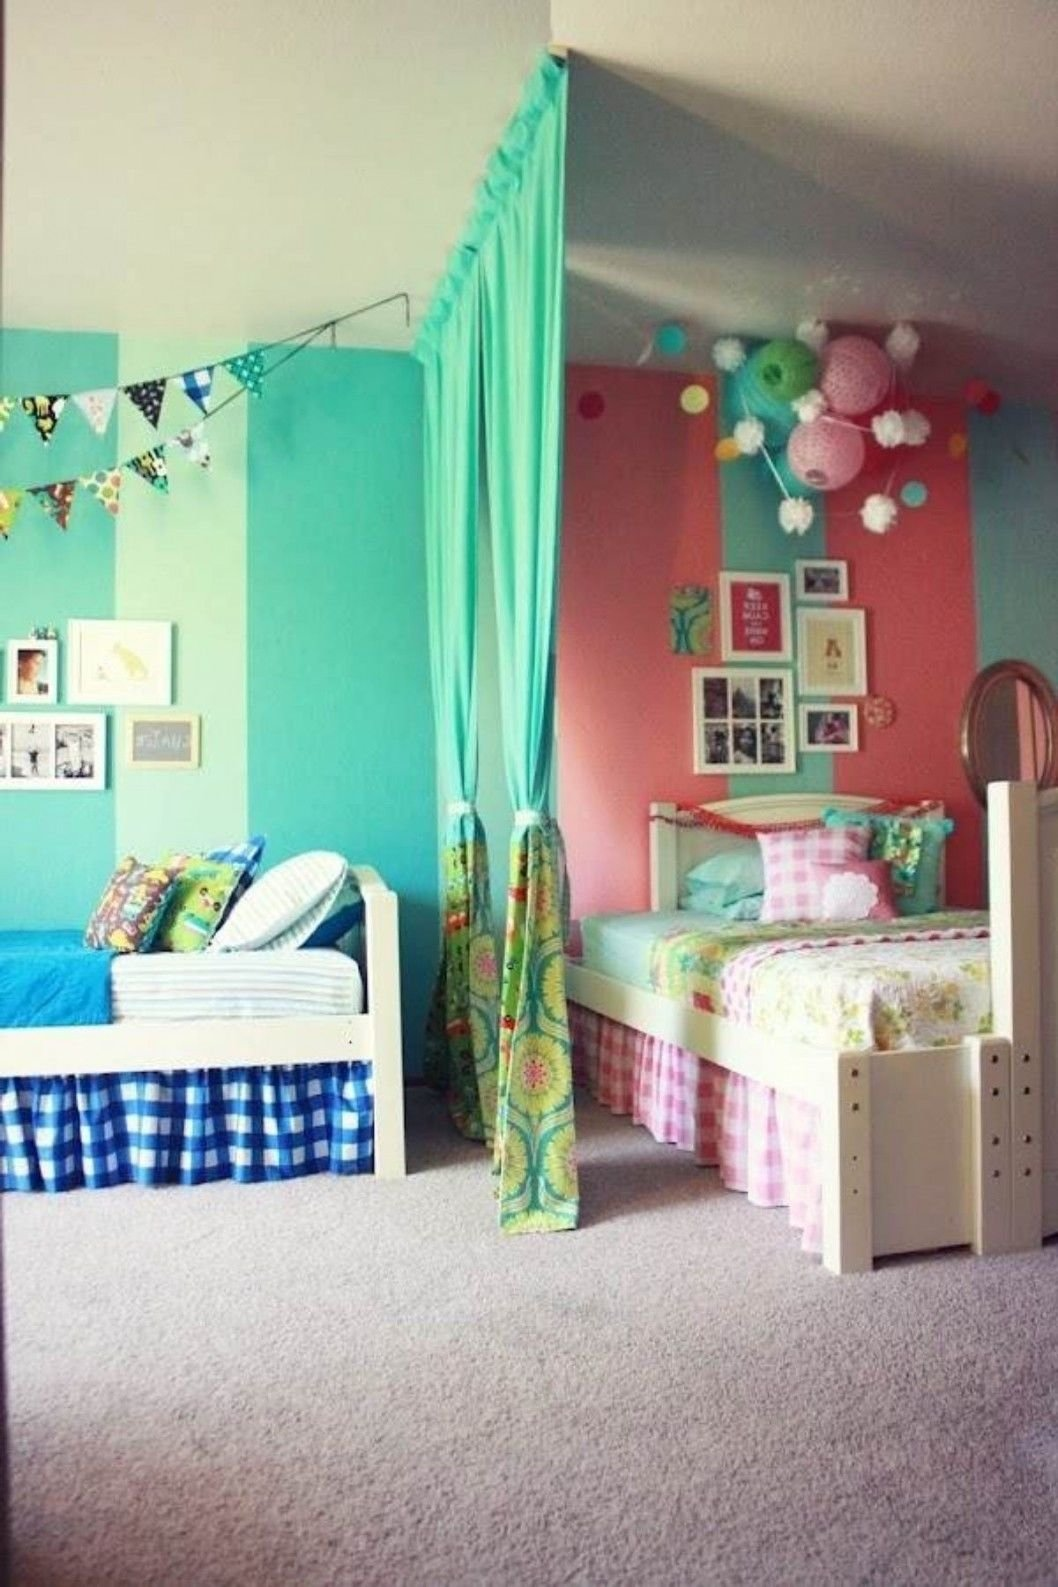 10 Cute Cute Ideas For Your Room best ideas to design your room best design 6031 2020